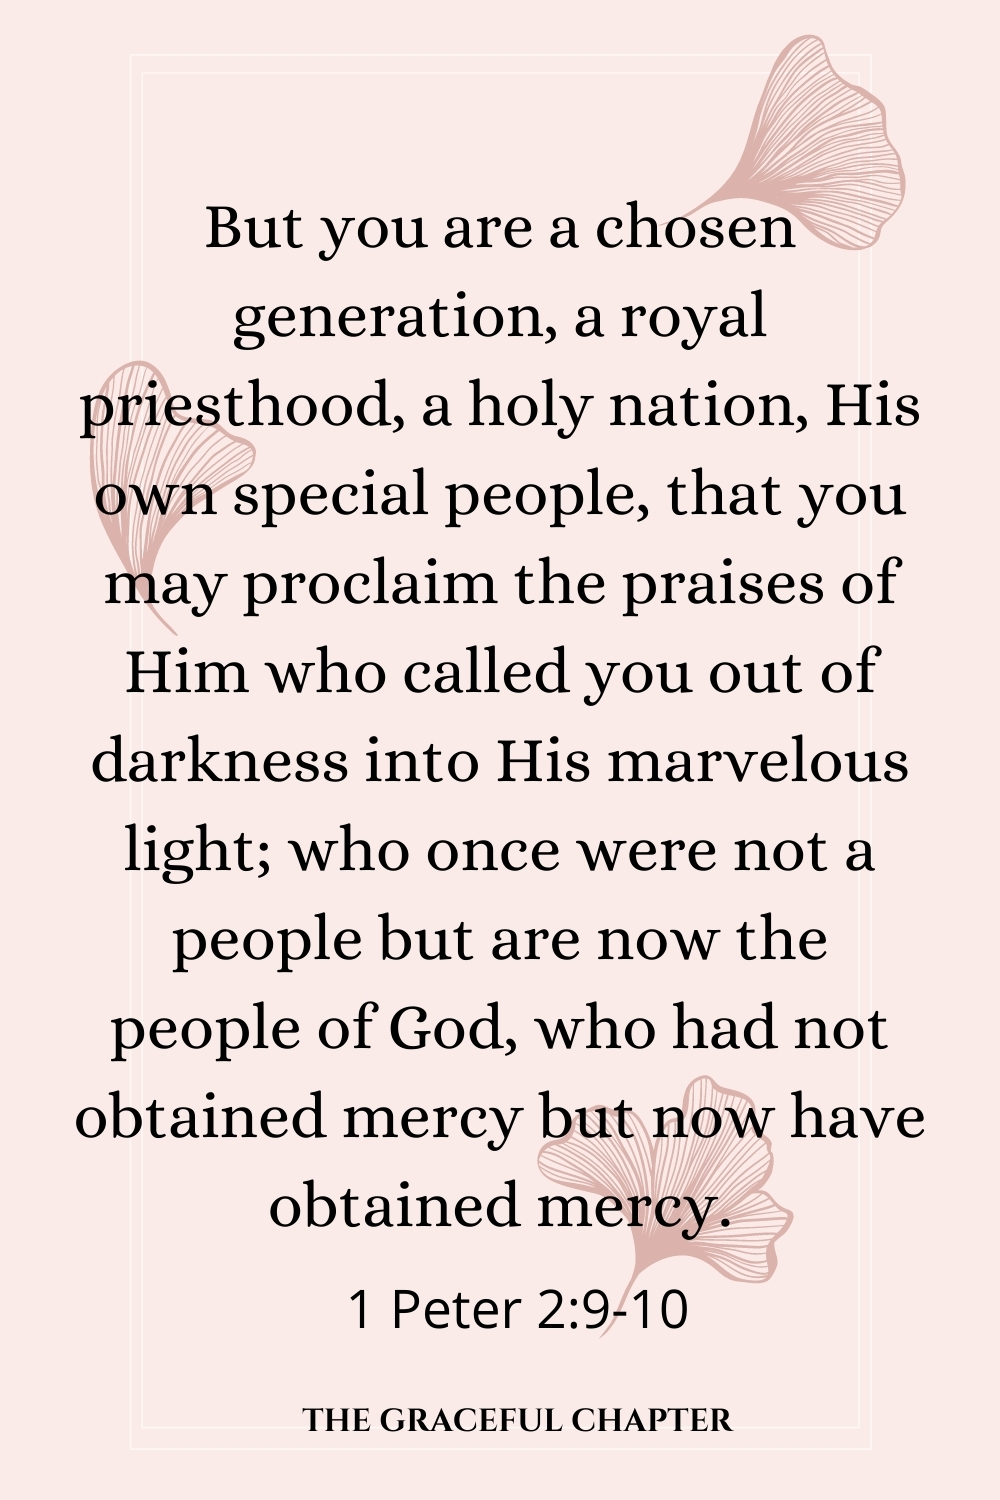 But you are a chosen generation, a royal priesthood, a holy nation, His own special people, that you may proclaim the praises of Him who called you out of darkness into His marvelous light; who once were not a people but are now the people of God, who had not obtained mercy but now have obtained mercy. 1 Peter 2:9-10